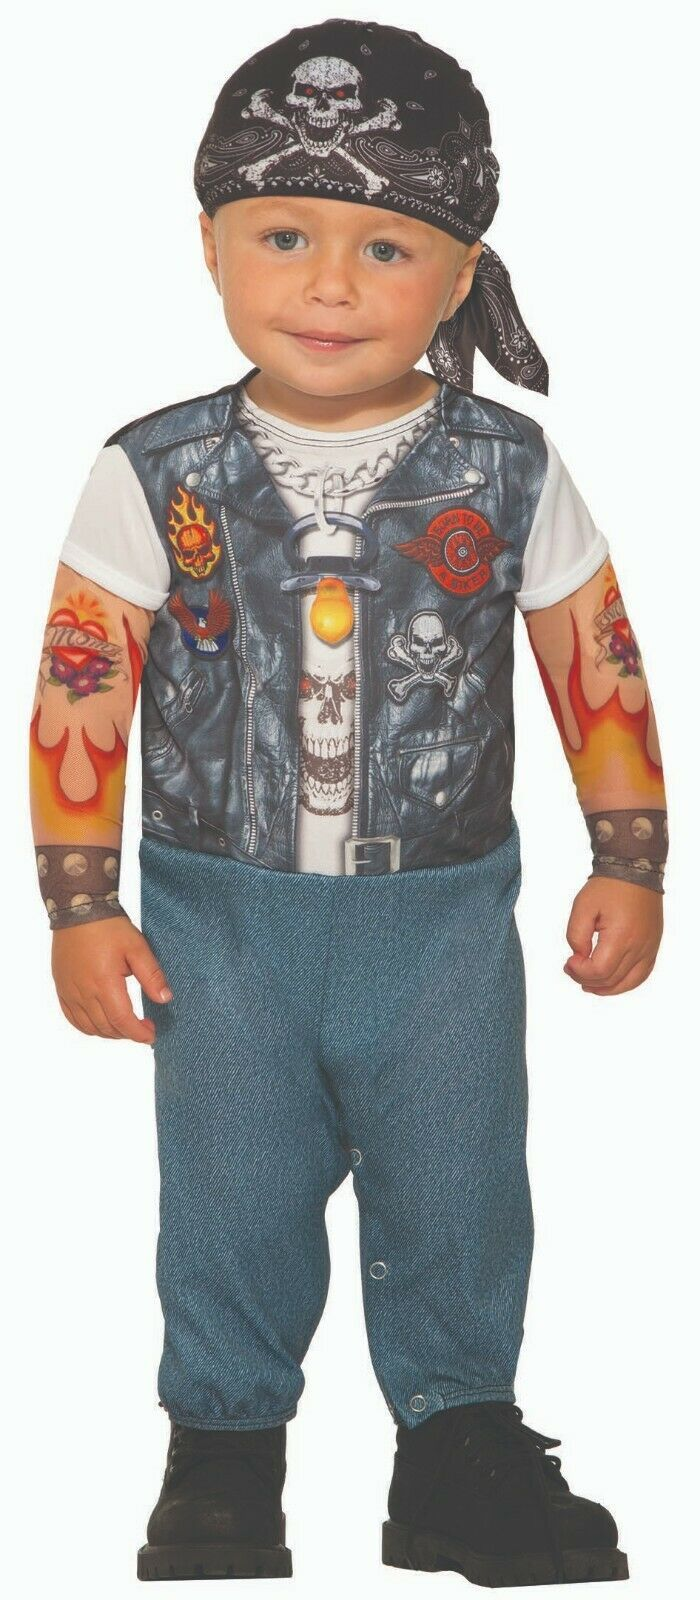 Primary image for Forum Novelties Wild Child Tattooed Biker Toddler Infant Halloween Costume 81934